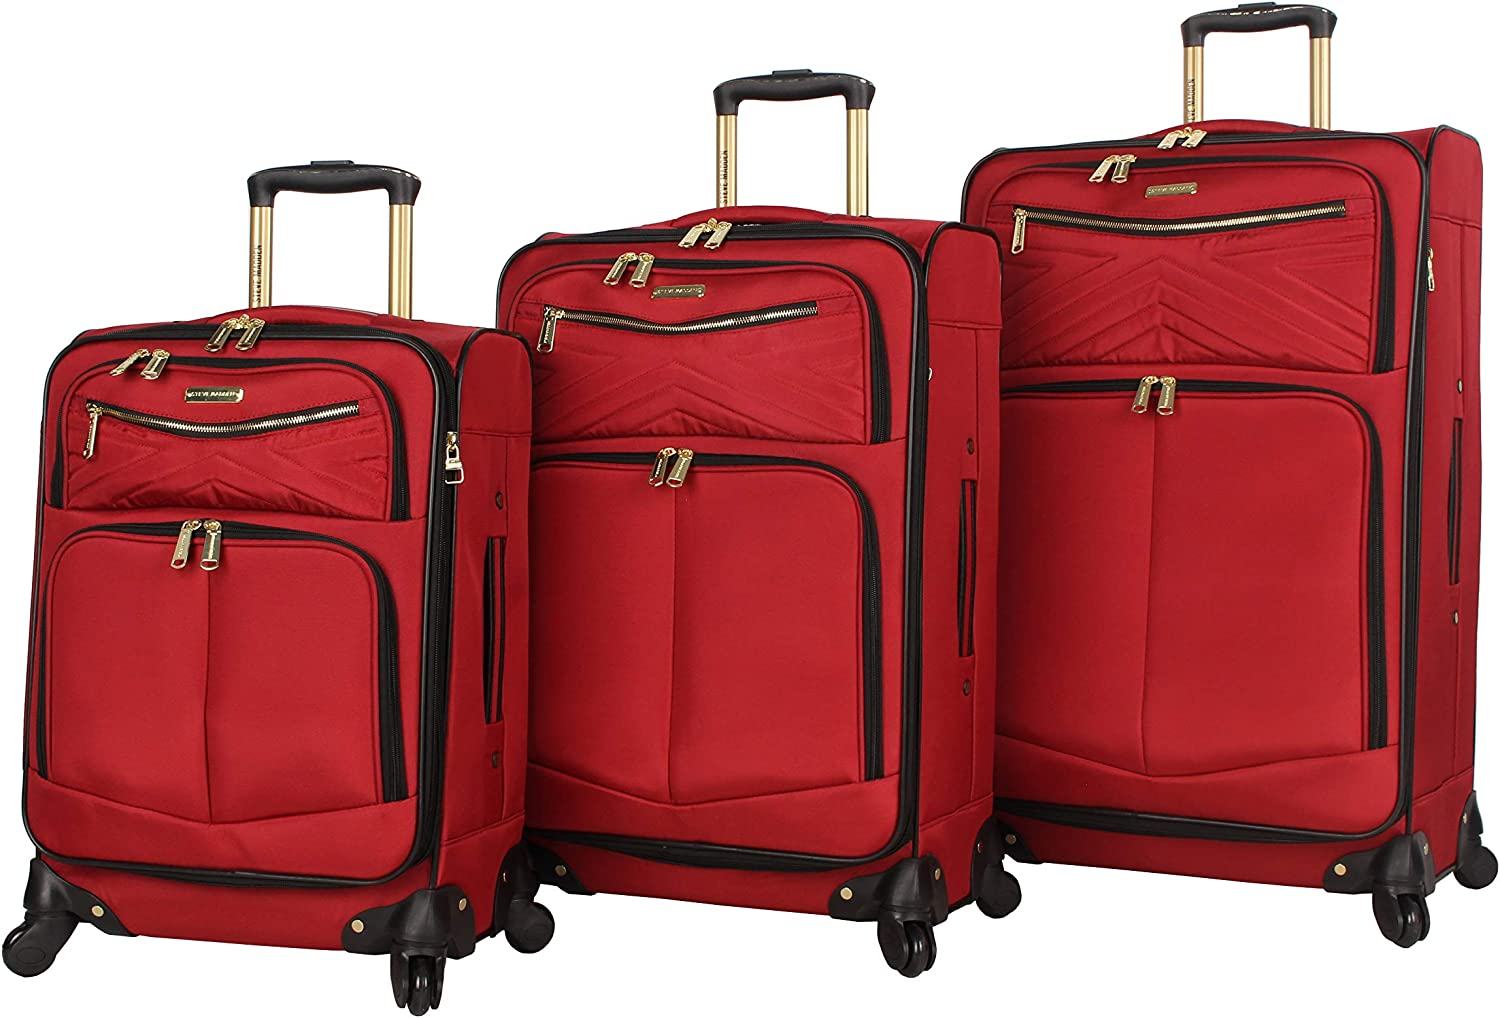 Steve Madden Designer Luggage Collection - 3 Piece Softside Expandable Lightweight Spinner Suitcase Set - Travel Set includes 20 Inch Carry on, 24 Inch & 28-Inch Checked Suitcases (Rockstar Red)